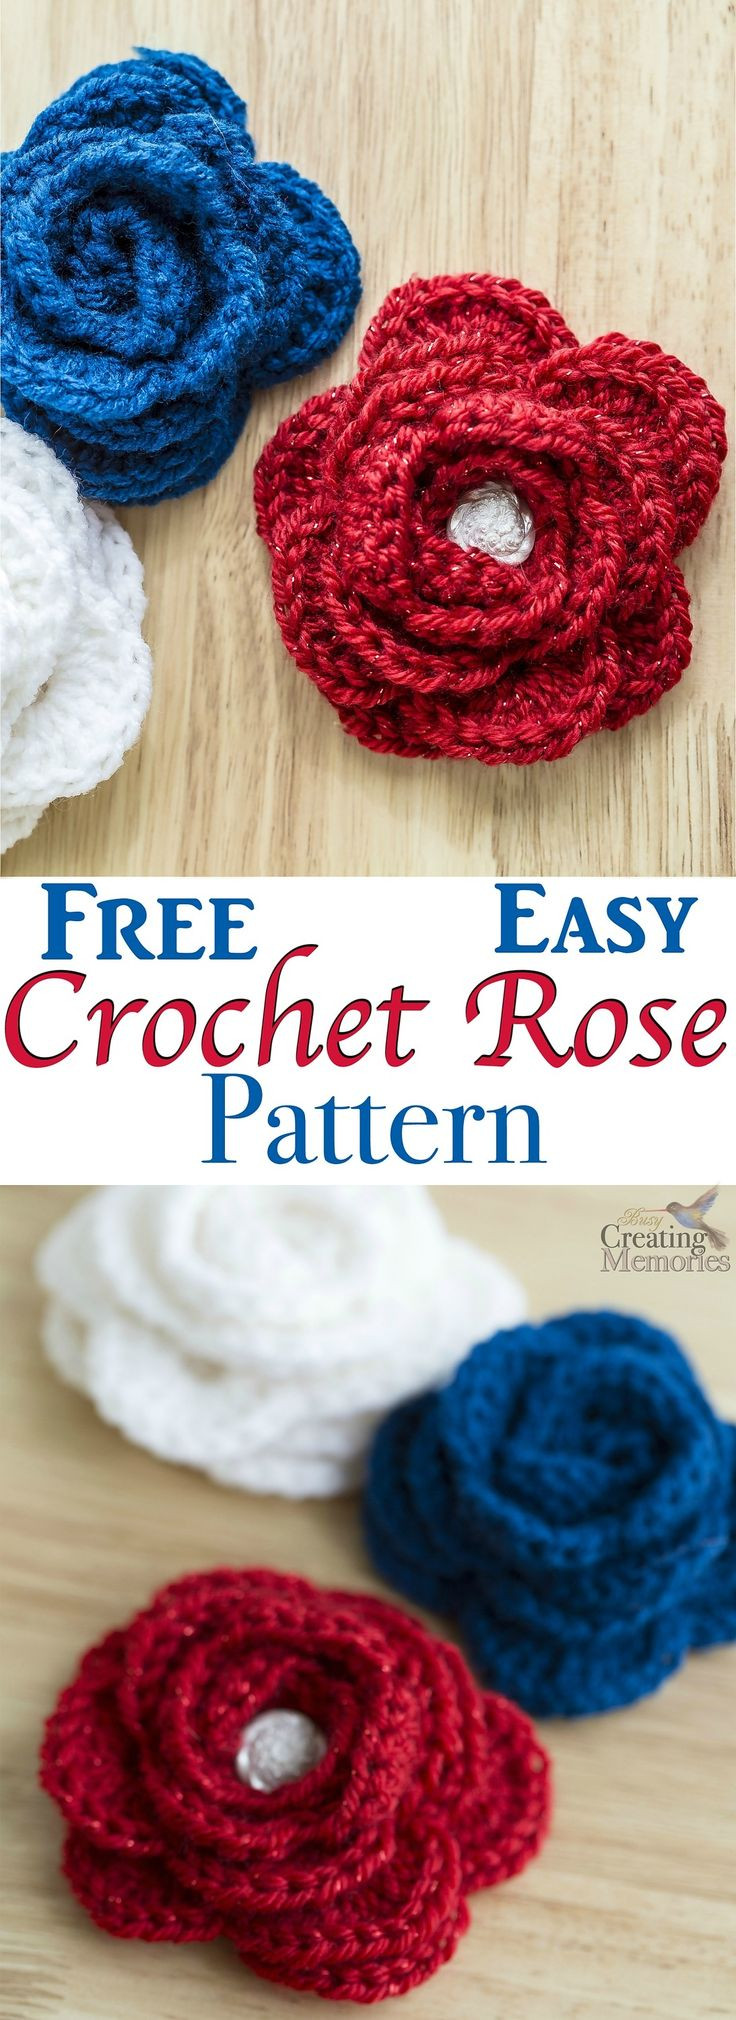 Different Crochet Patterns Beautiful 5 Different Free Easy Crochet Patterns Crochet and Of Brilliant 48 Pictures Different Crochet Patterns